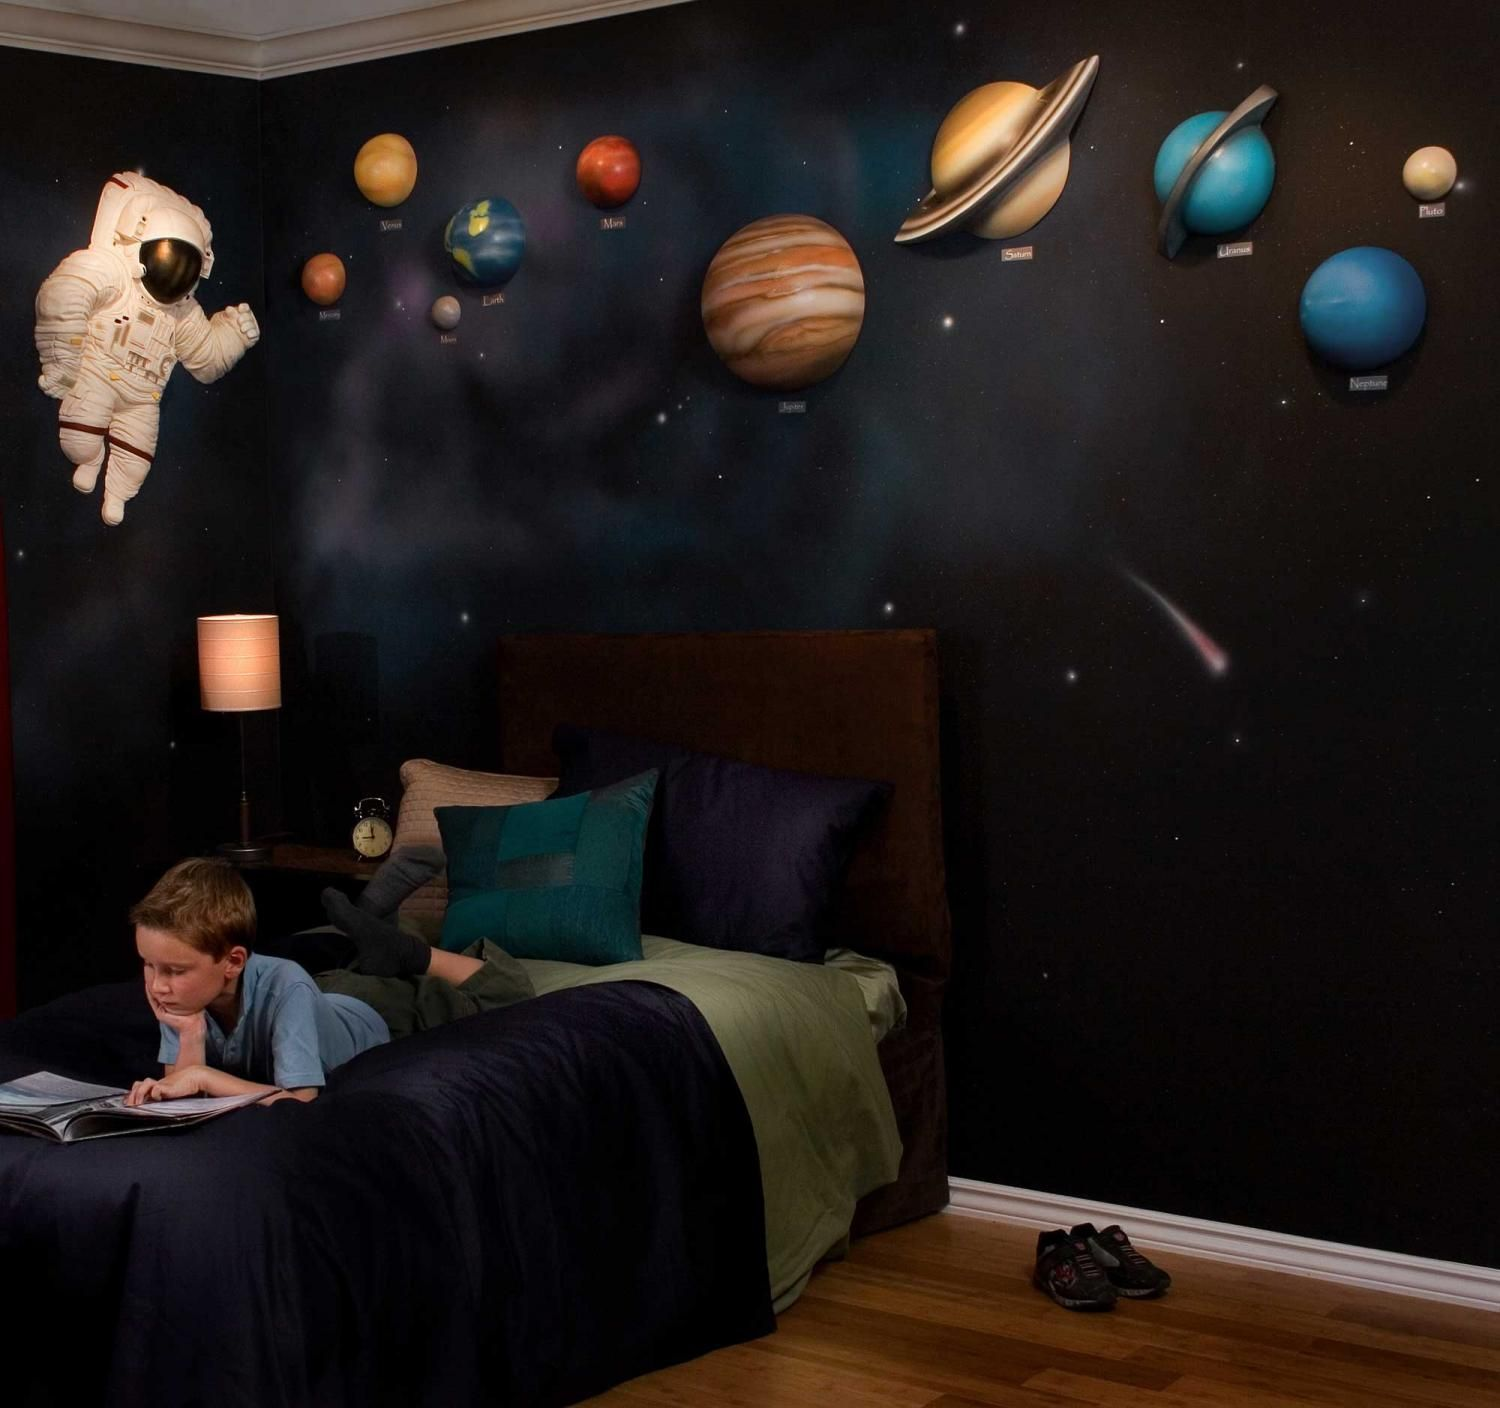 Solar system with space astronaut 3d wall art decor by for 3d room decoration